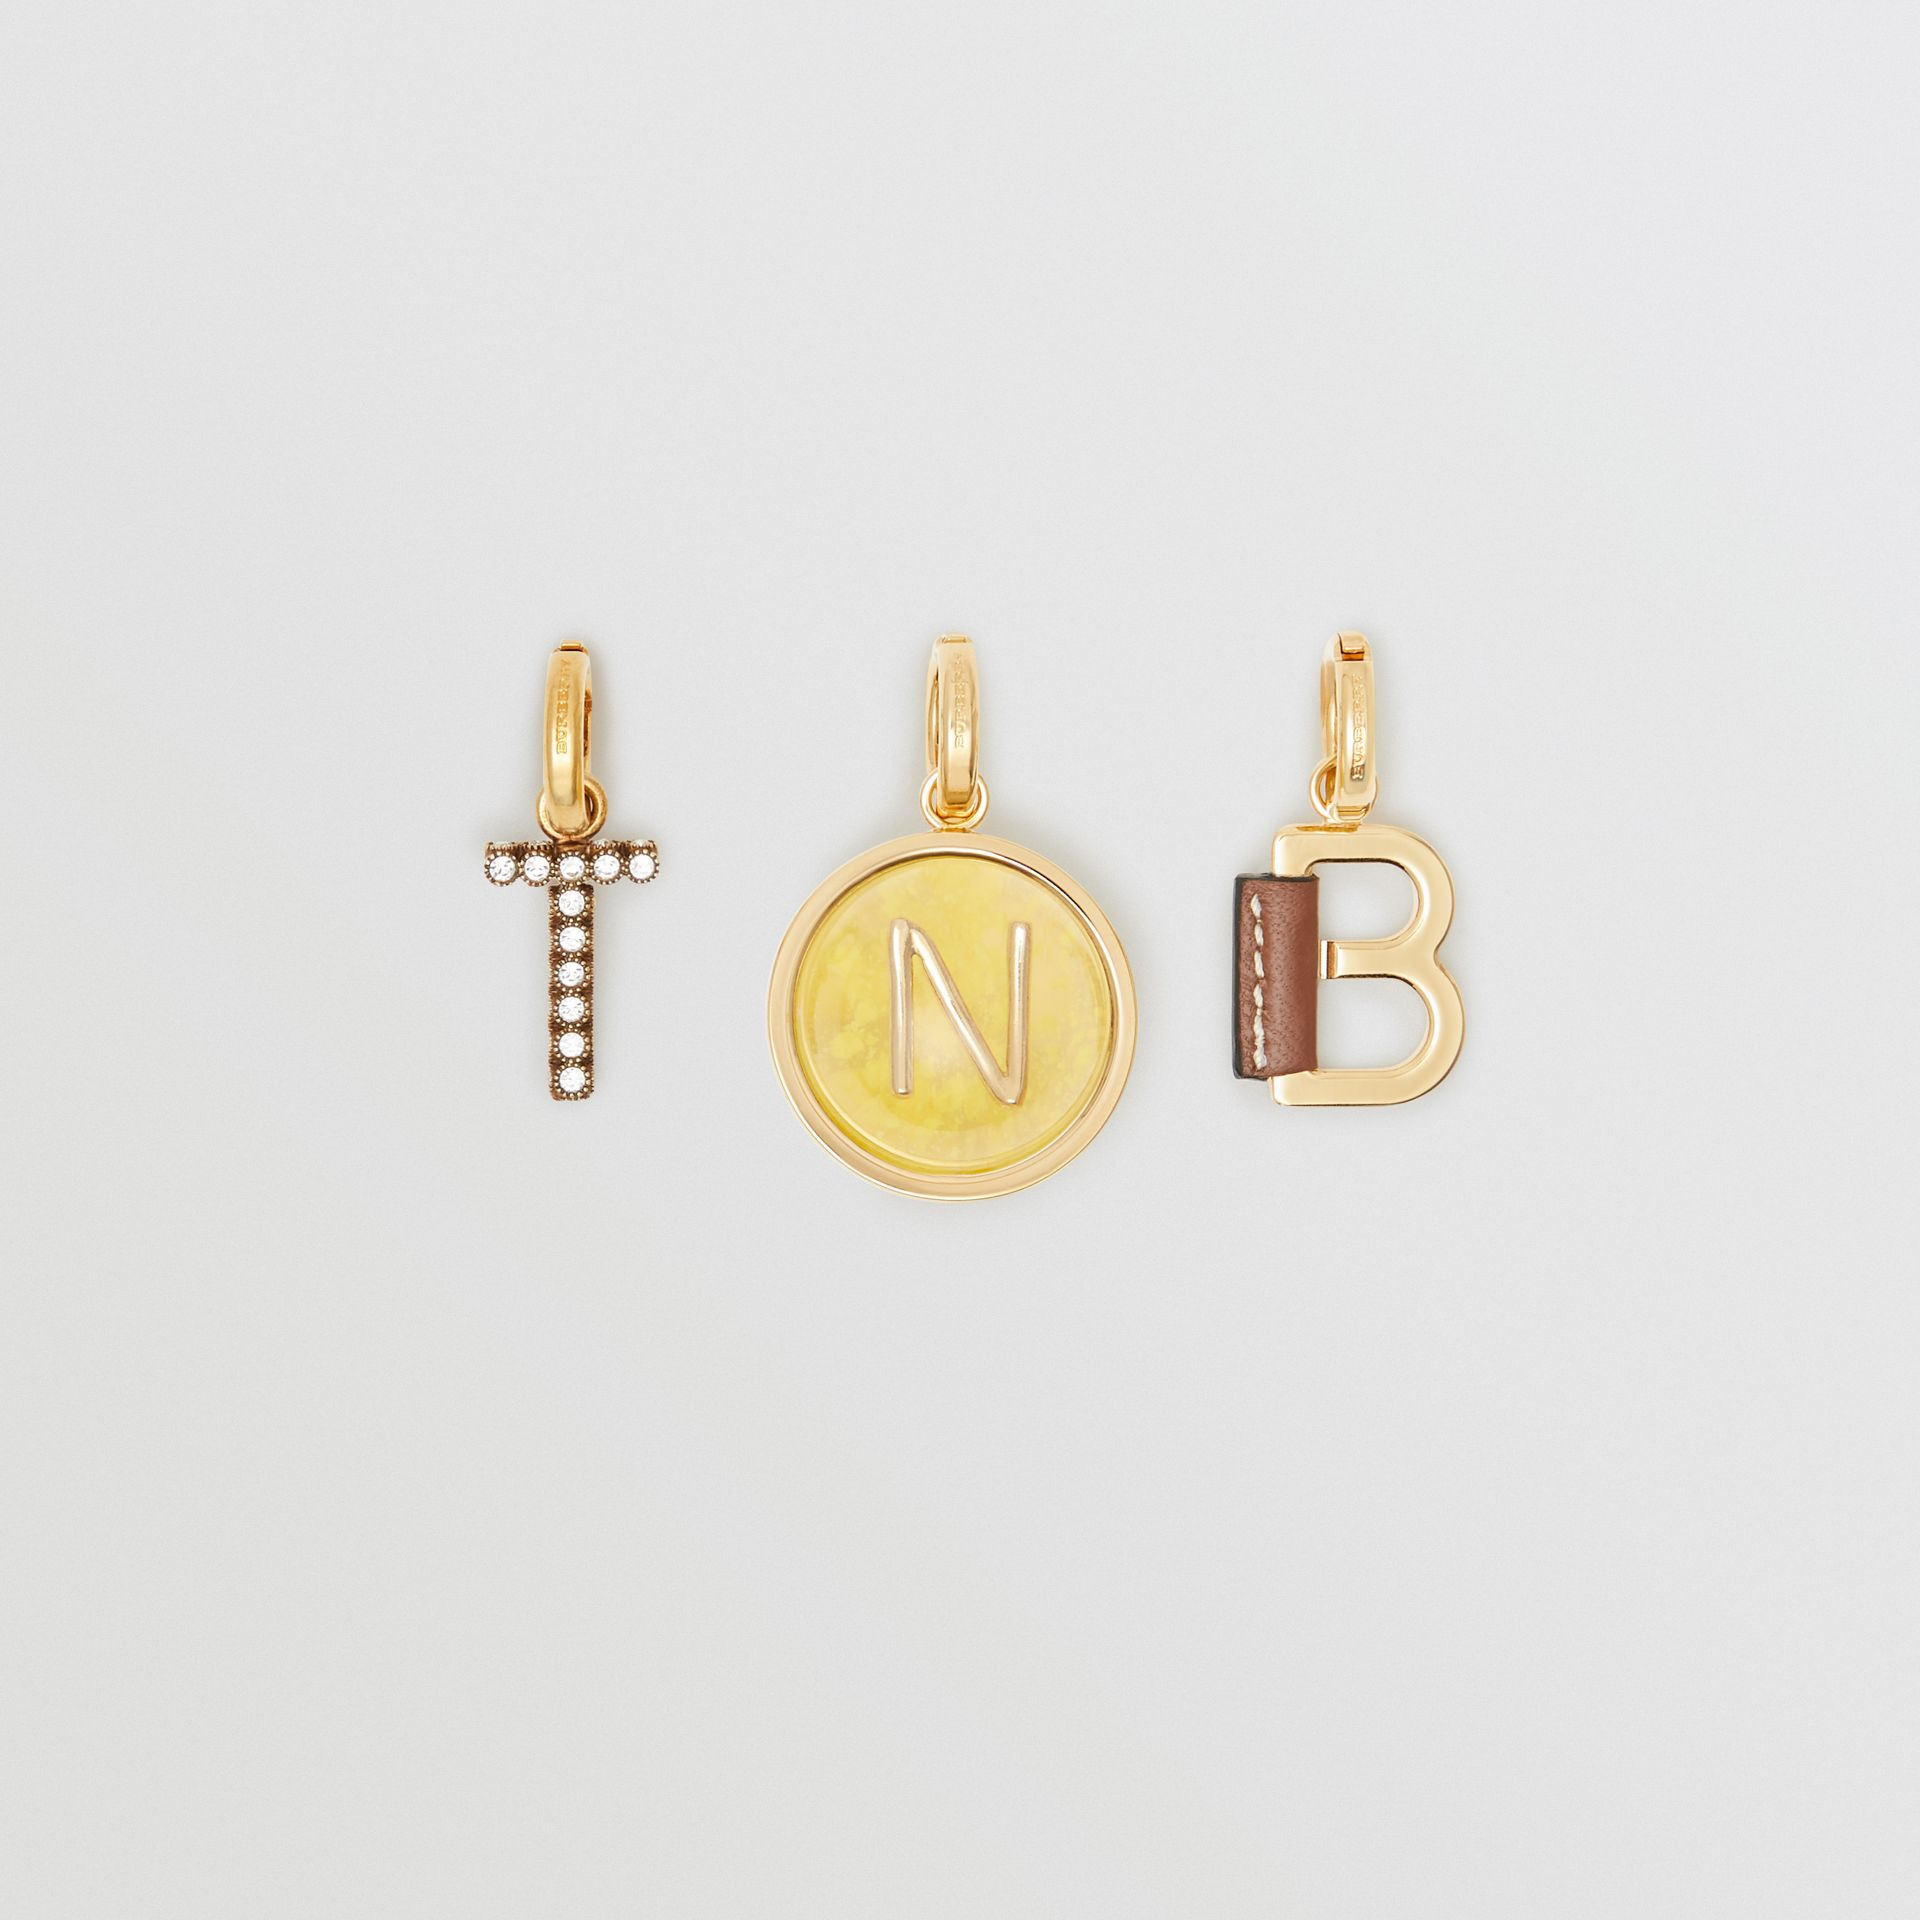 Marbled Resin 'N' Alphabet Charm in Gold/mimosa - Women | Burberry - gallery image 1